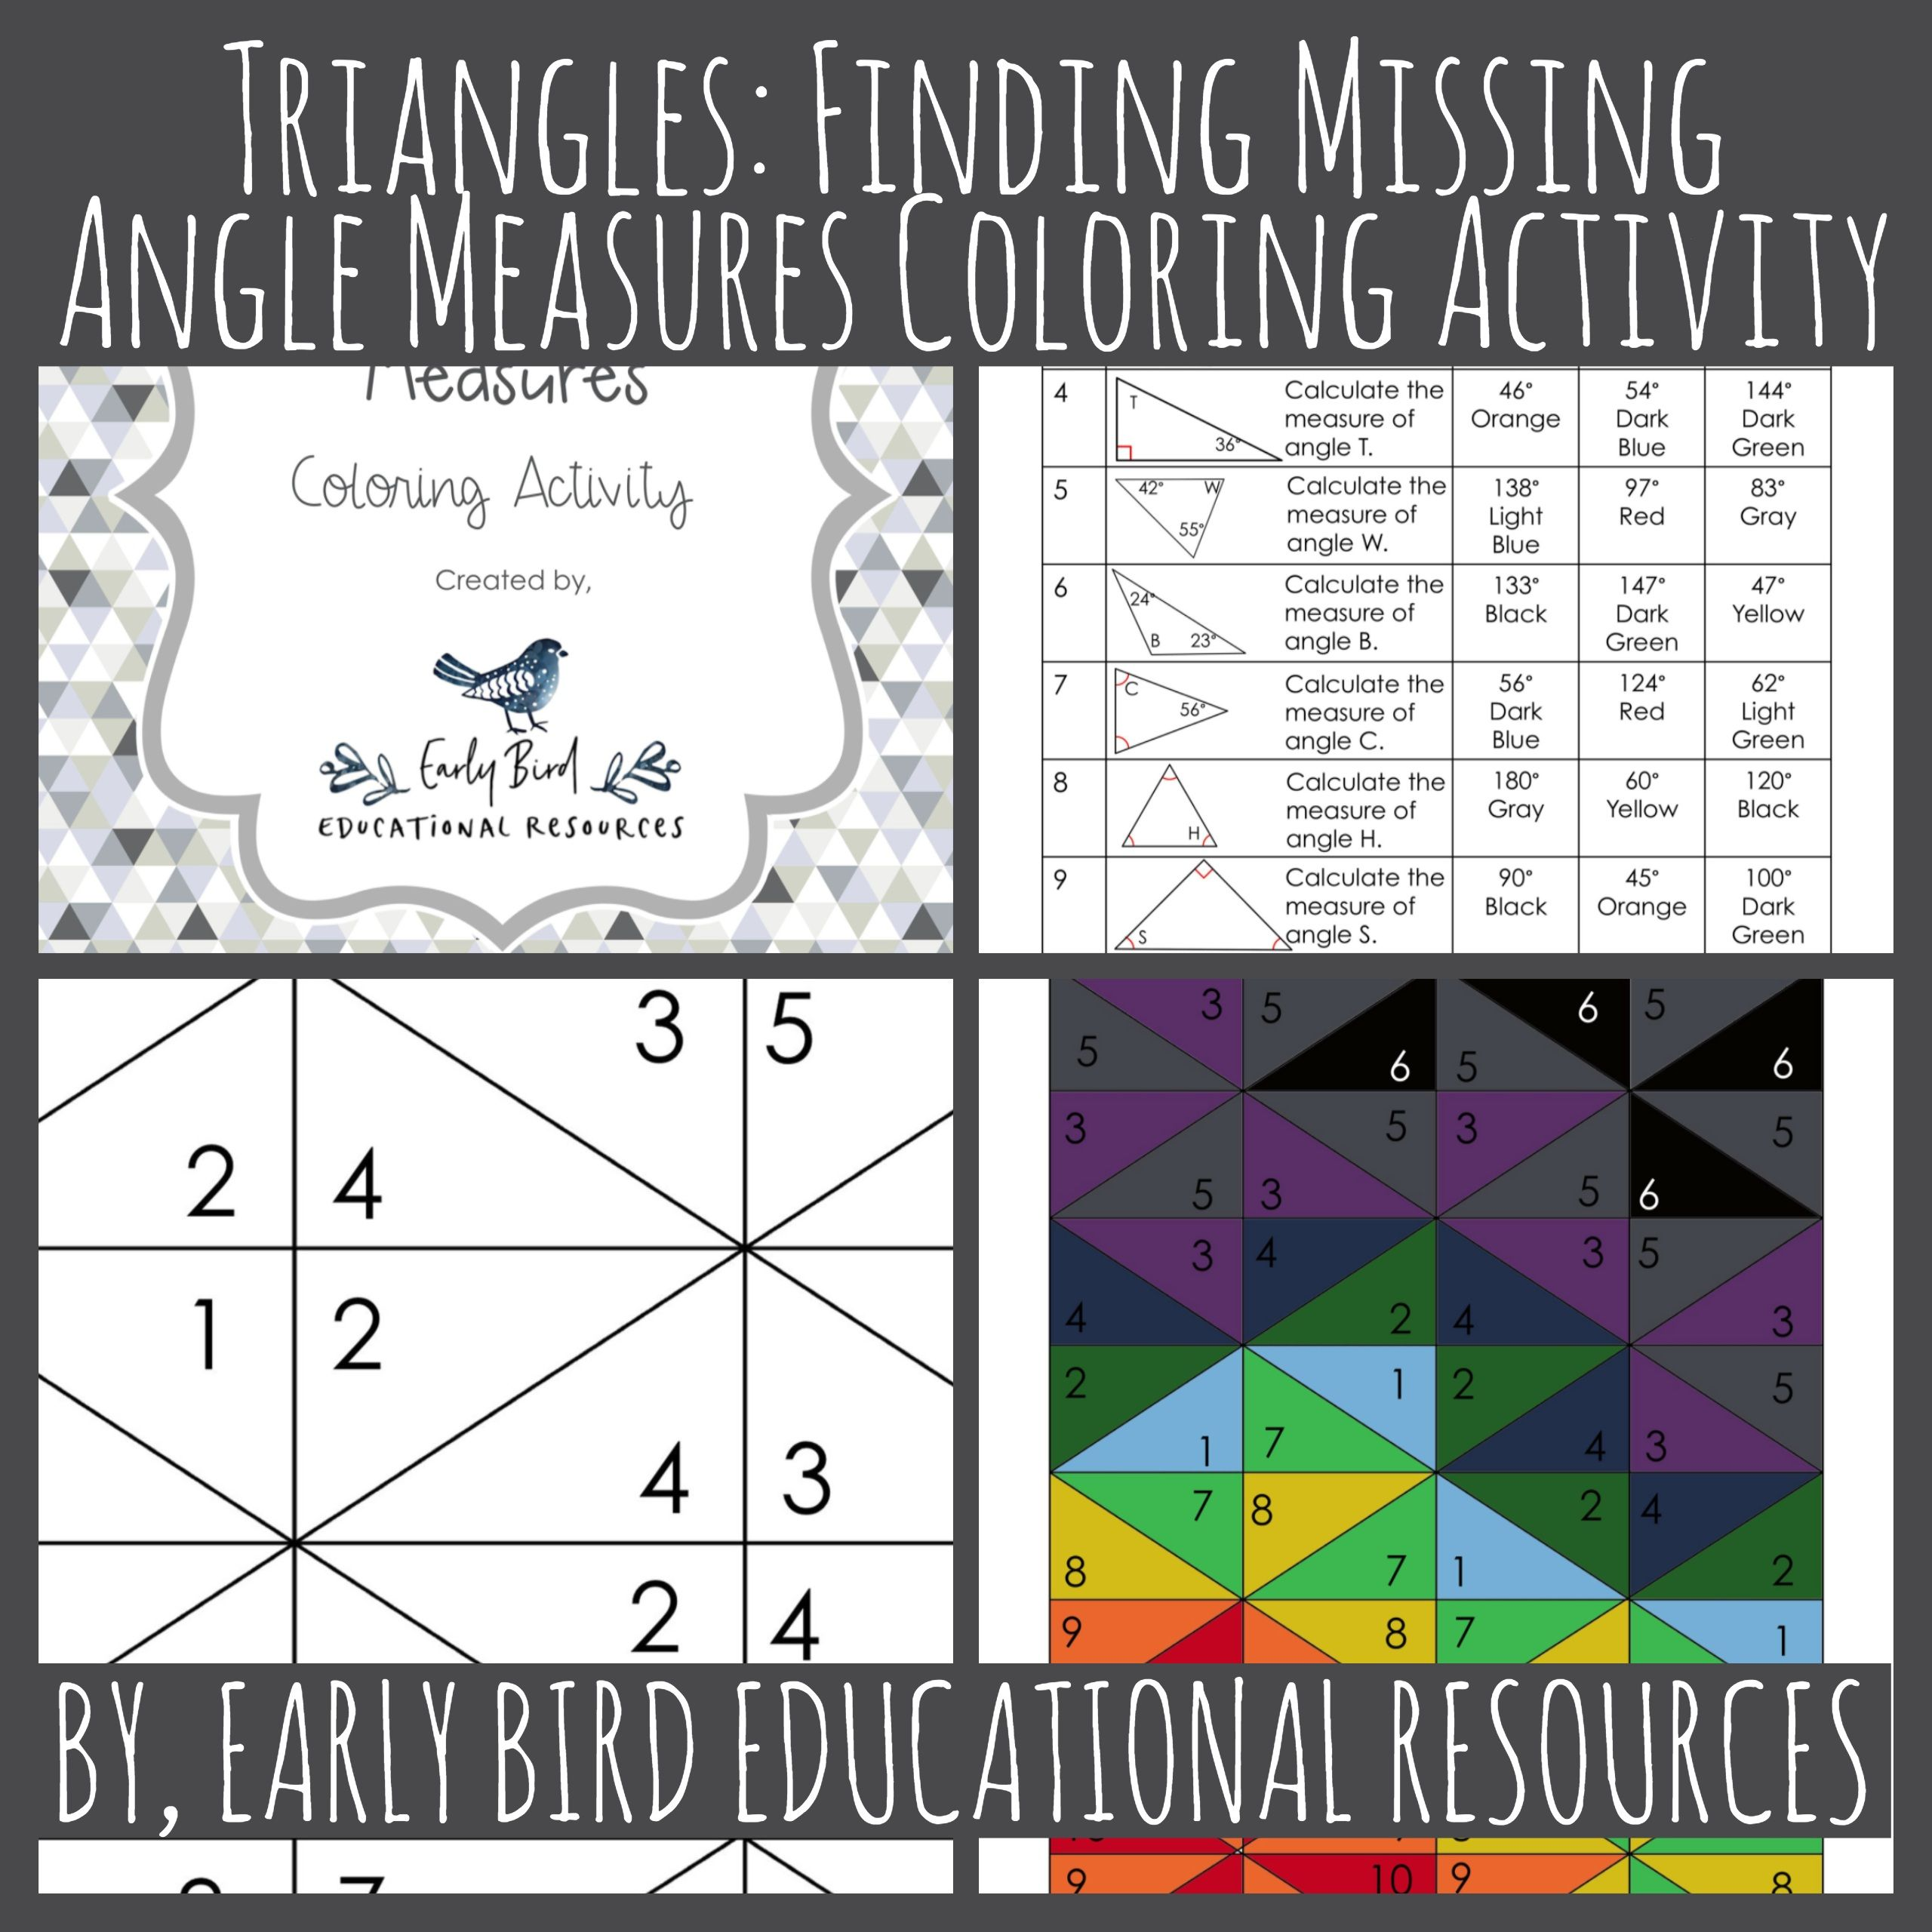 Triangles Finding Missing Angle Measures Coloring Activity This Worksheet Is A Fun Way For Color Activities Teacher Created Resources Elementary Activities